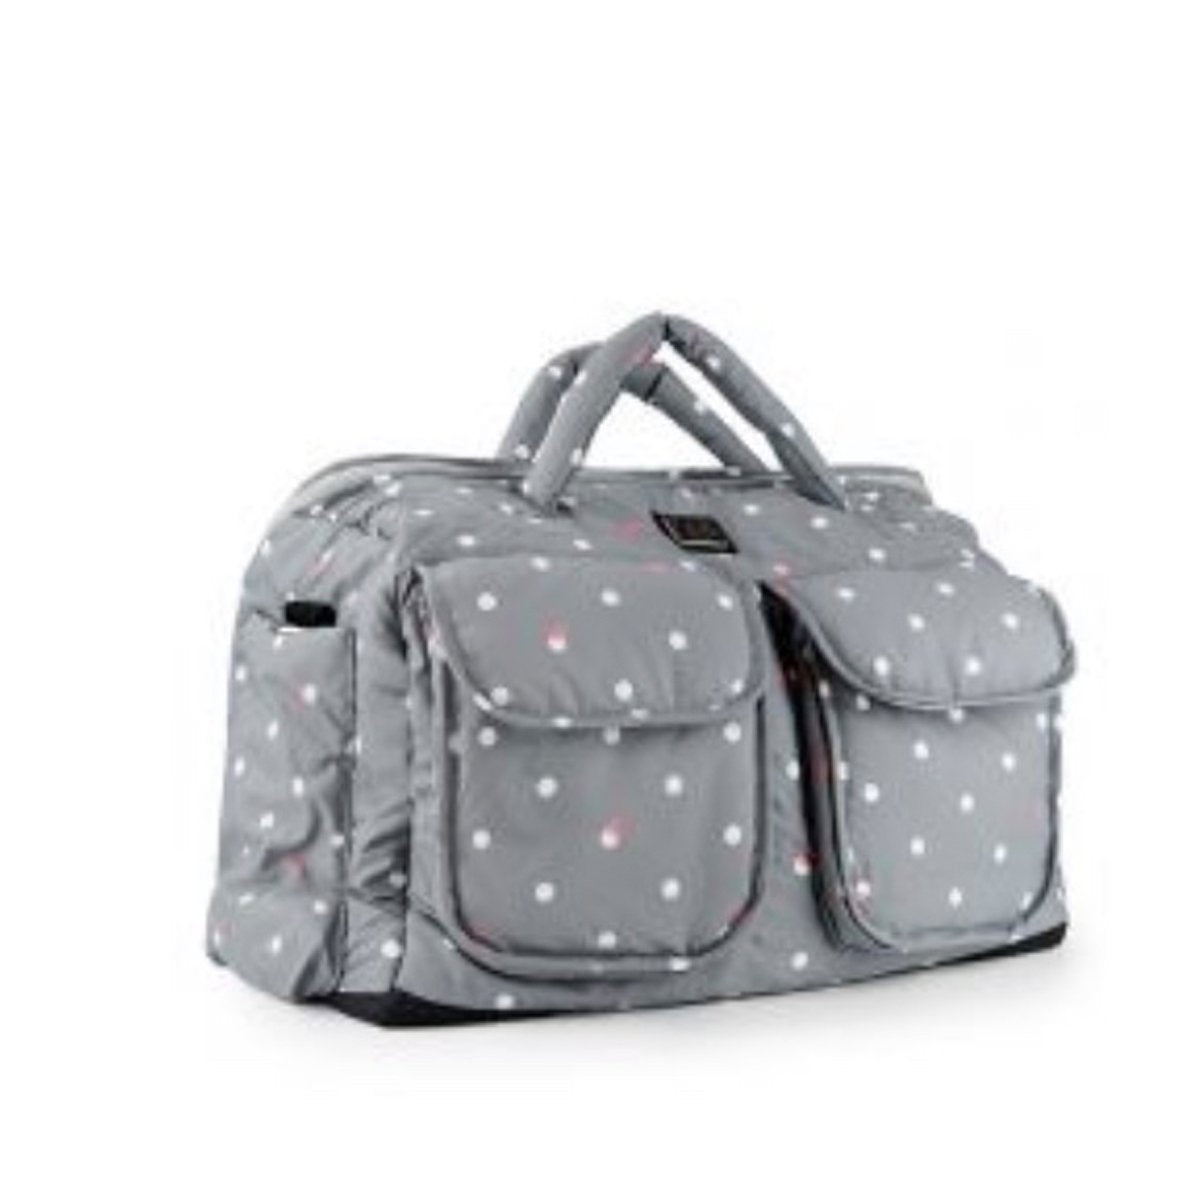 Voyage Diaper Bag Small- Grey Dots (New in Box)